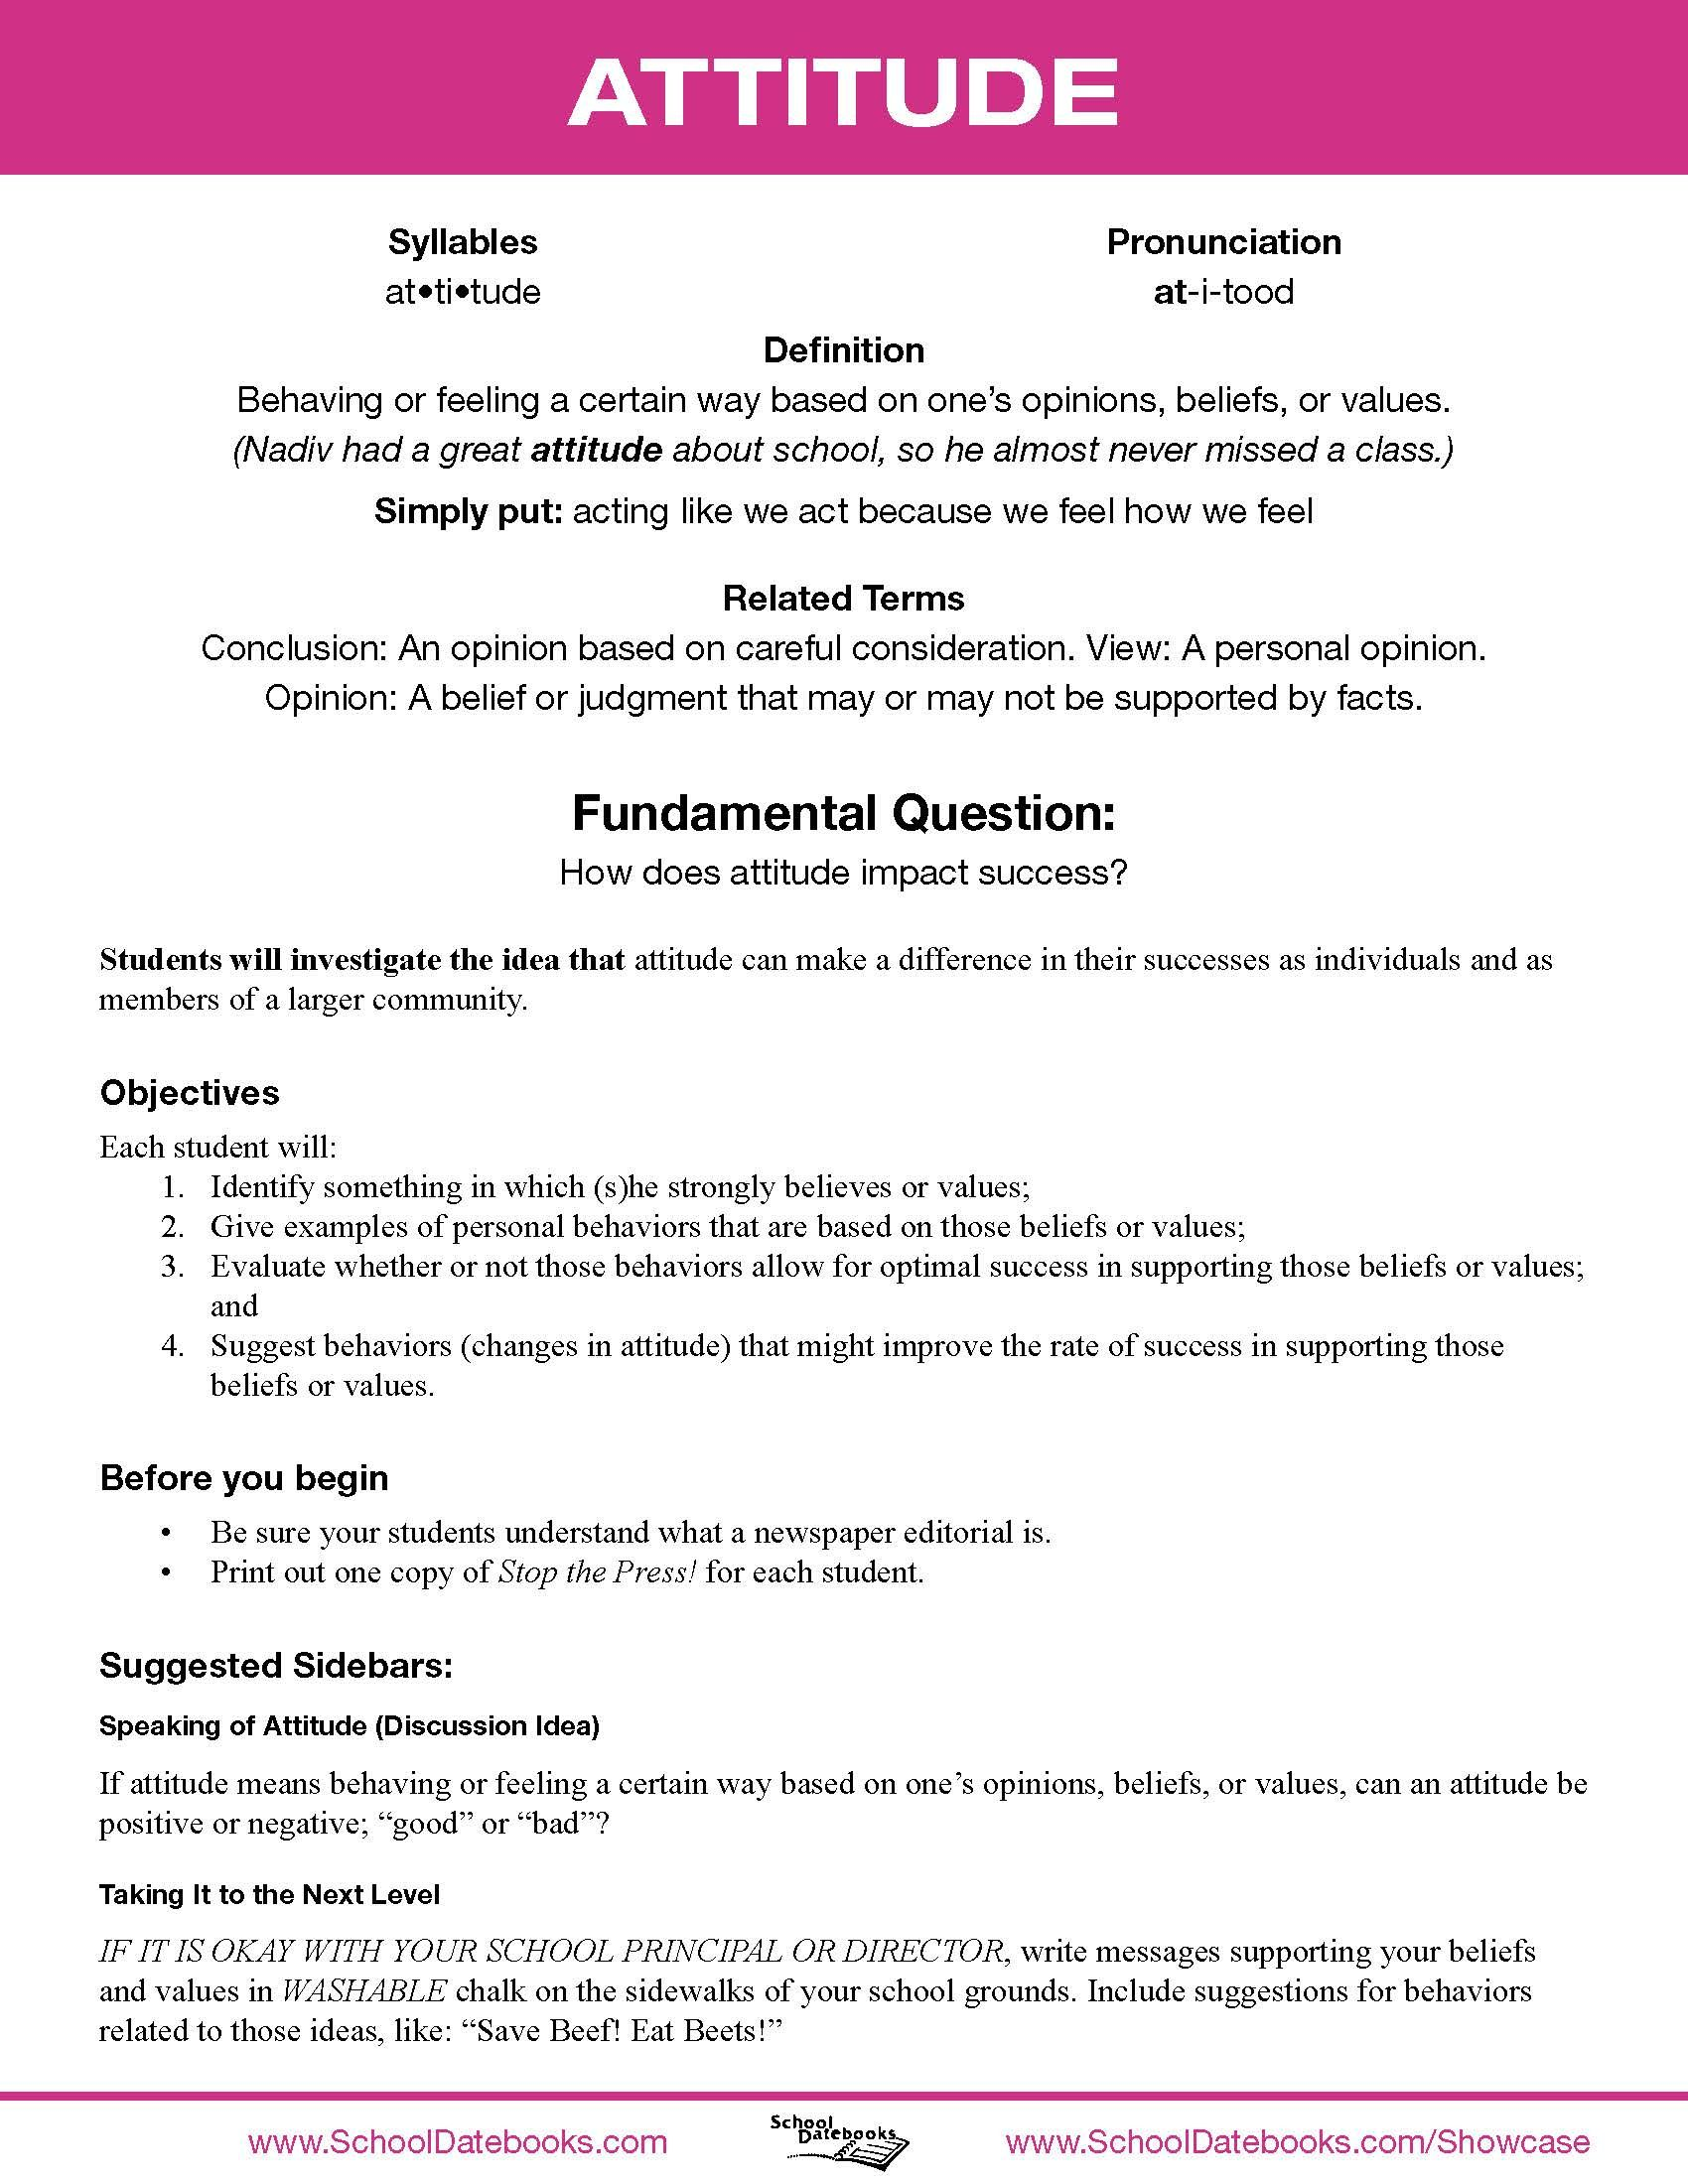 attitude character lesson plan free downloadable 52 total